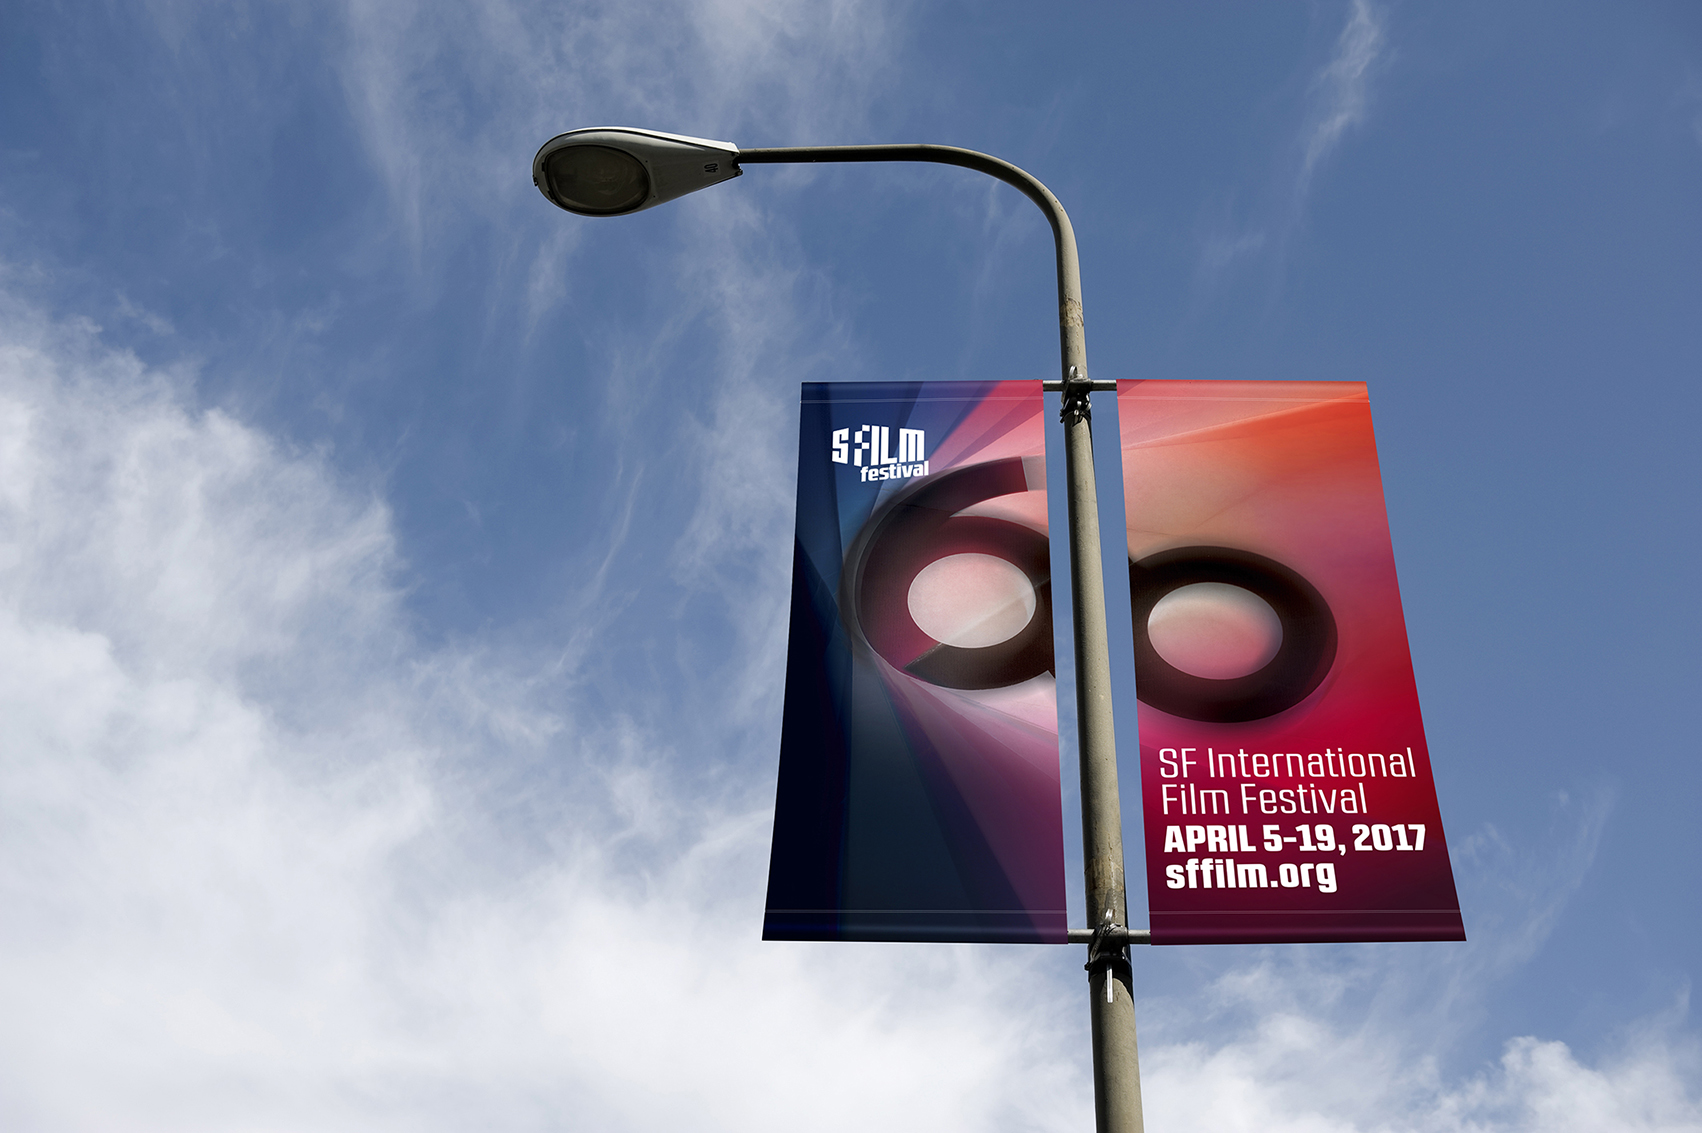 SFFILM_MUSE_Banners_01_LR